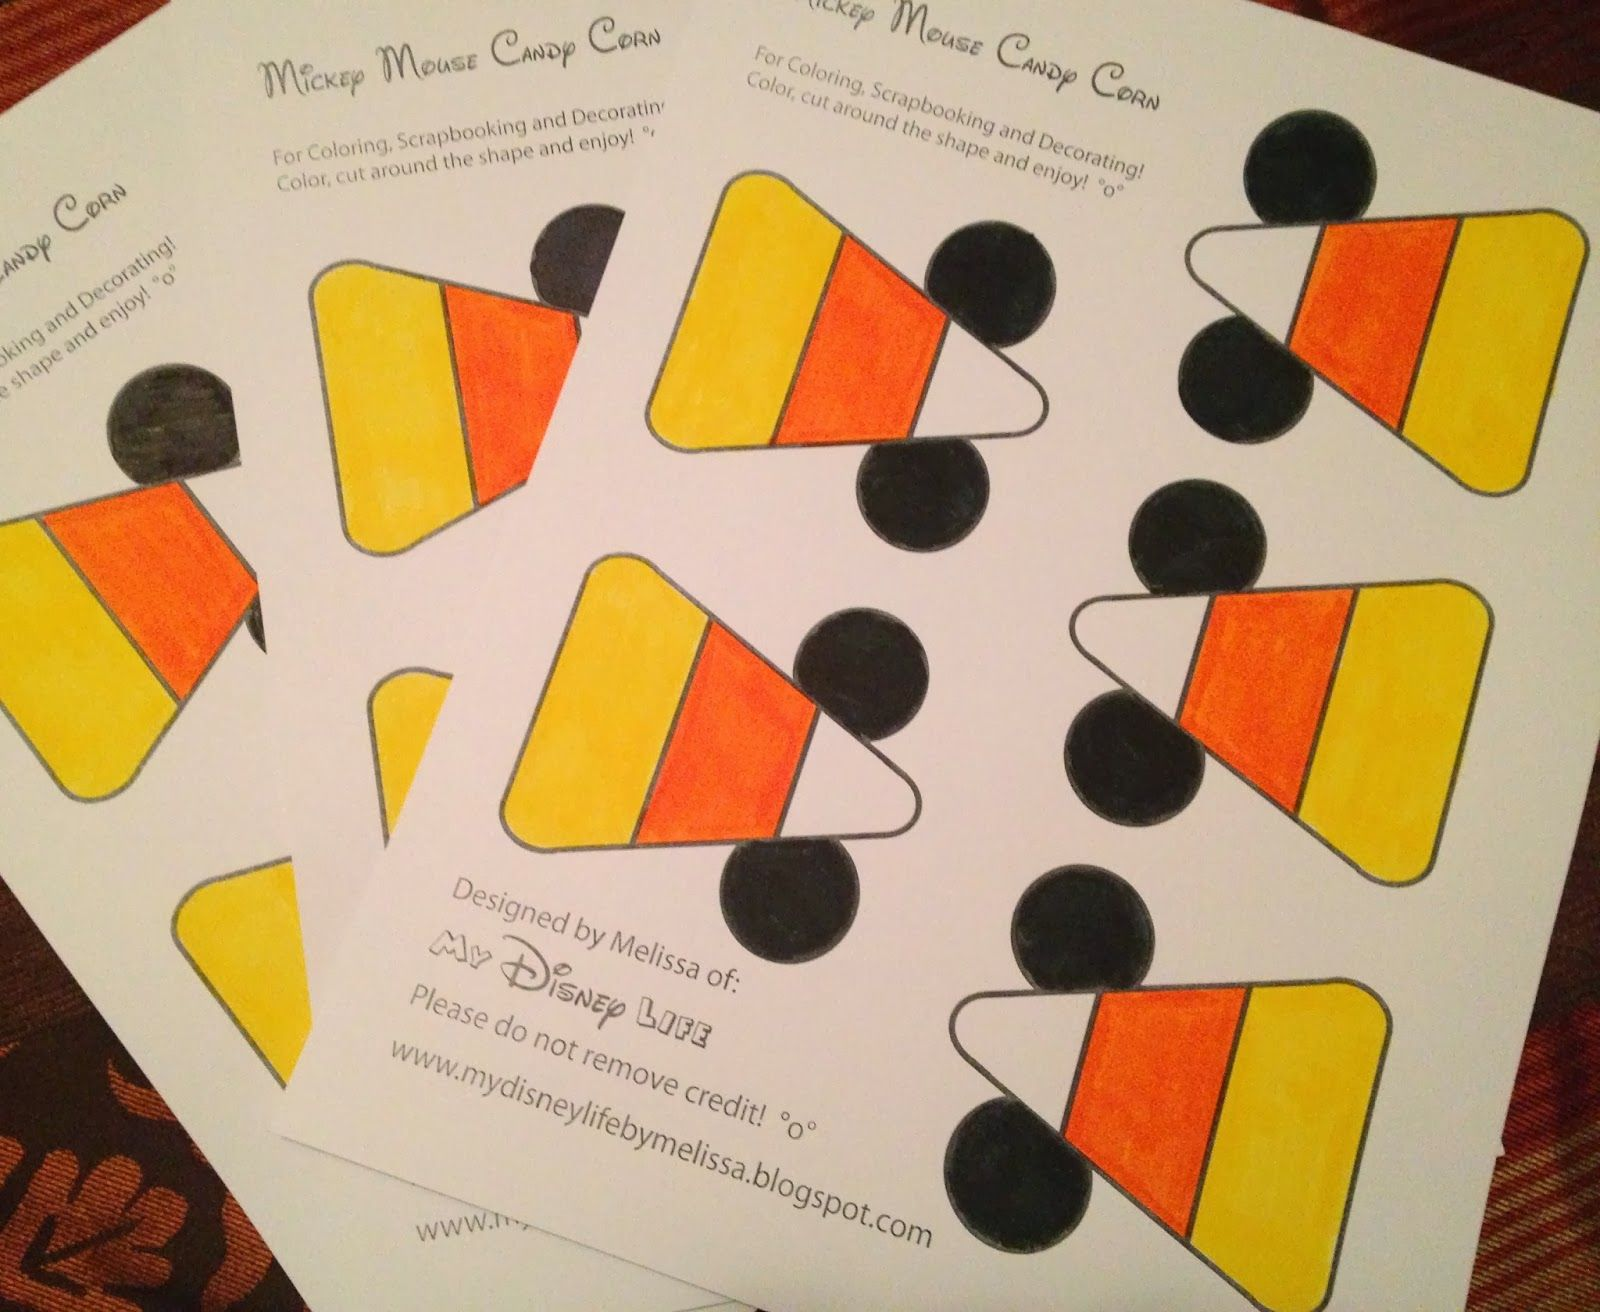 My Disney Life: FREE Mickey Candy Corn Printable PDF for Halloween decorating or scrapbooking!